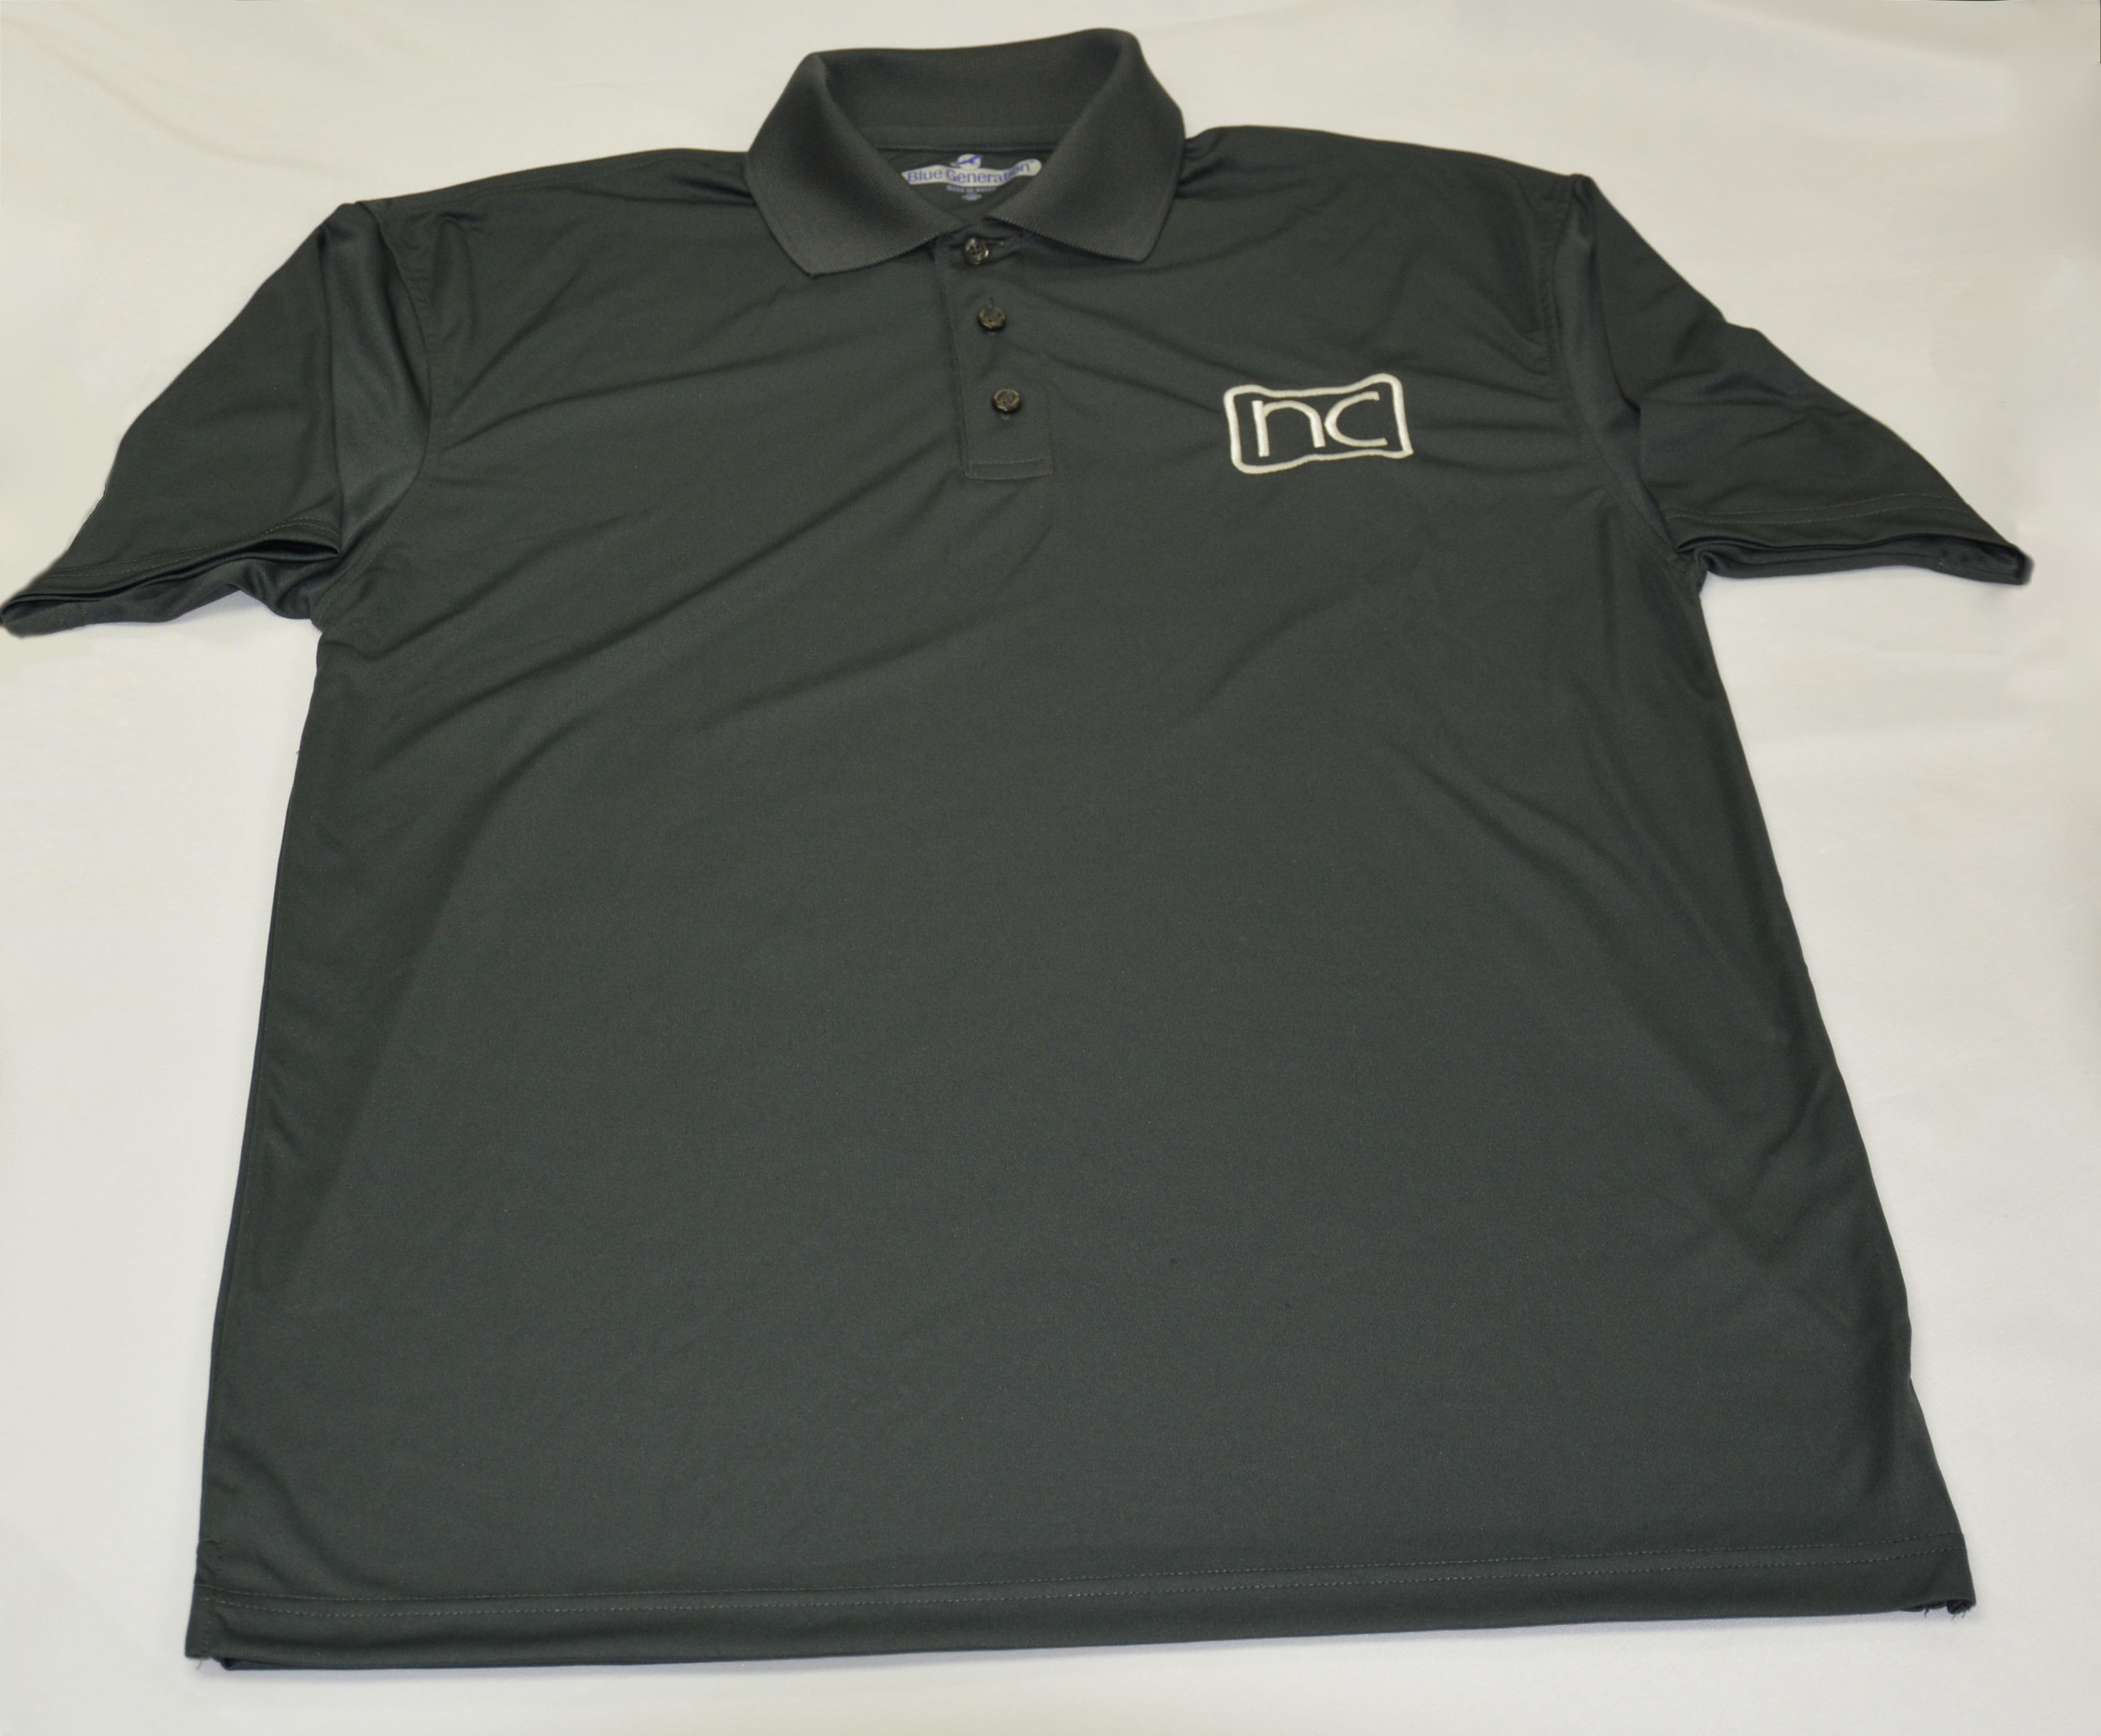 Men's Grey Polo Shirts in sizes S - XXXL